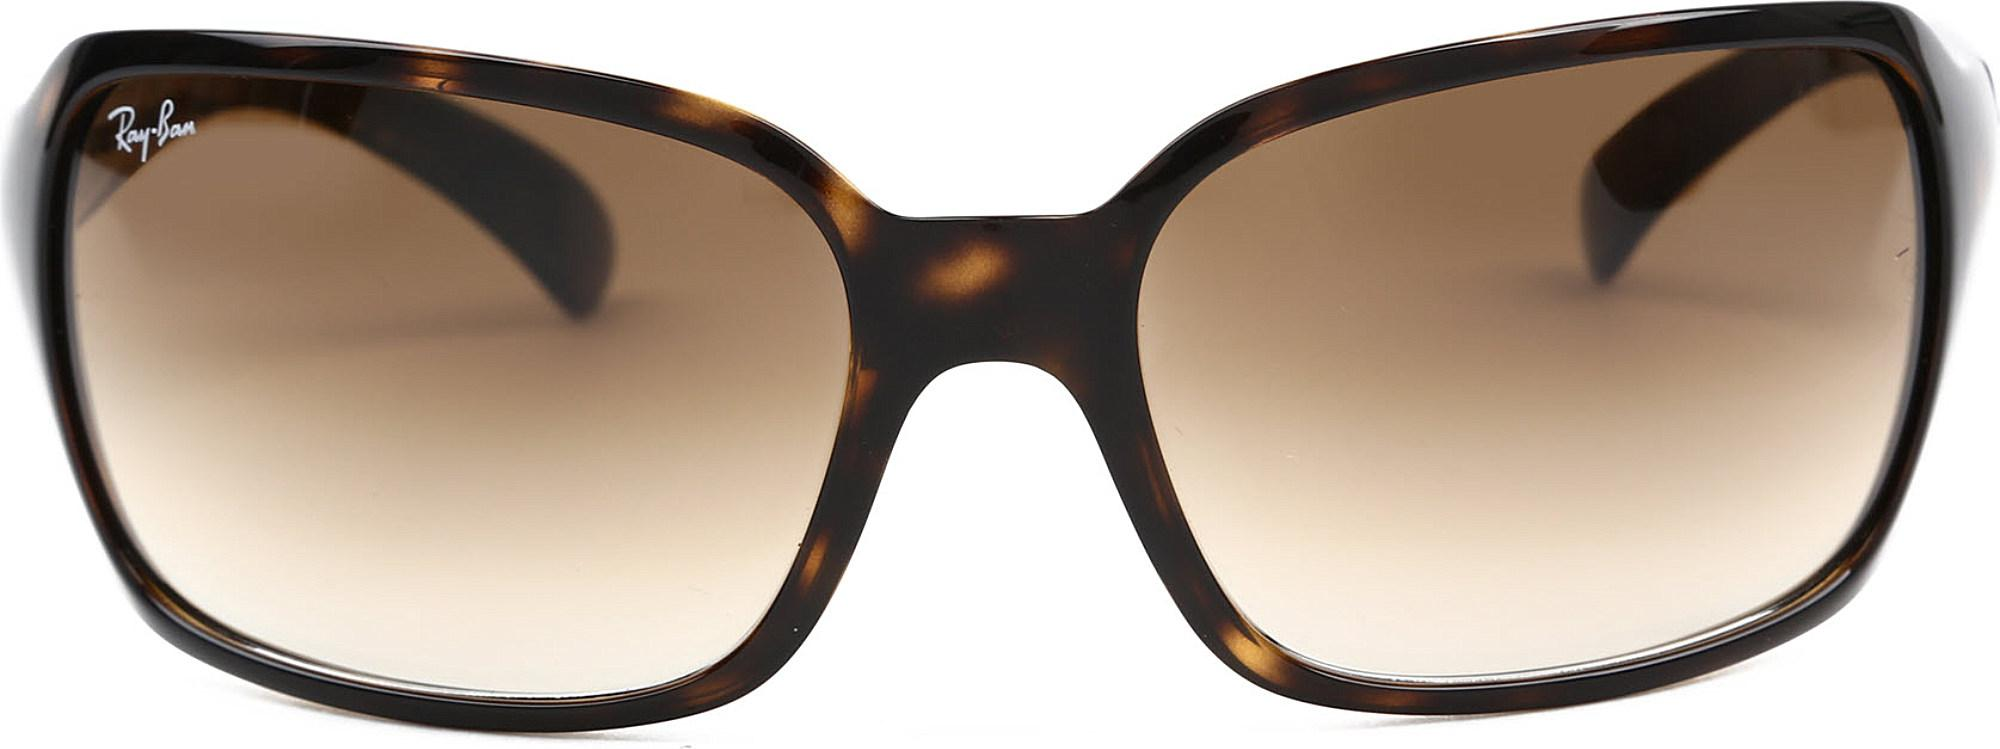 5a1856c678 Ray-Ban. Women s Light Havana Square Sunglasses In Tortoiseshell With Brown  Tinted Lenses Rb4068 60